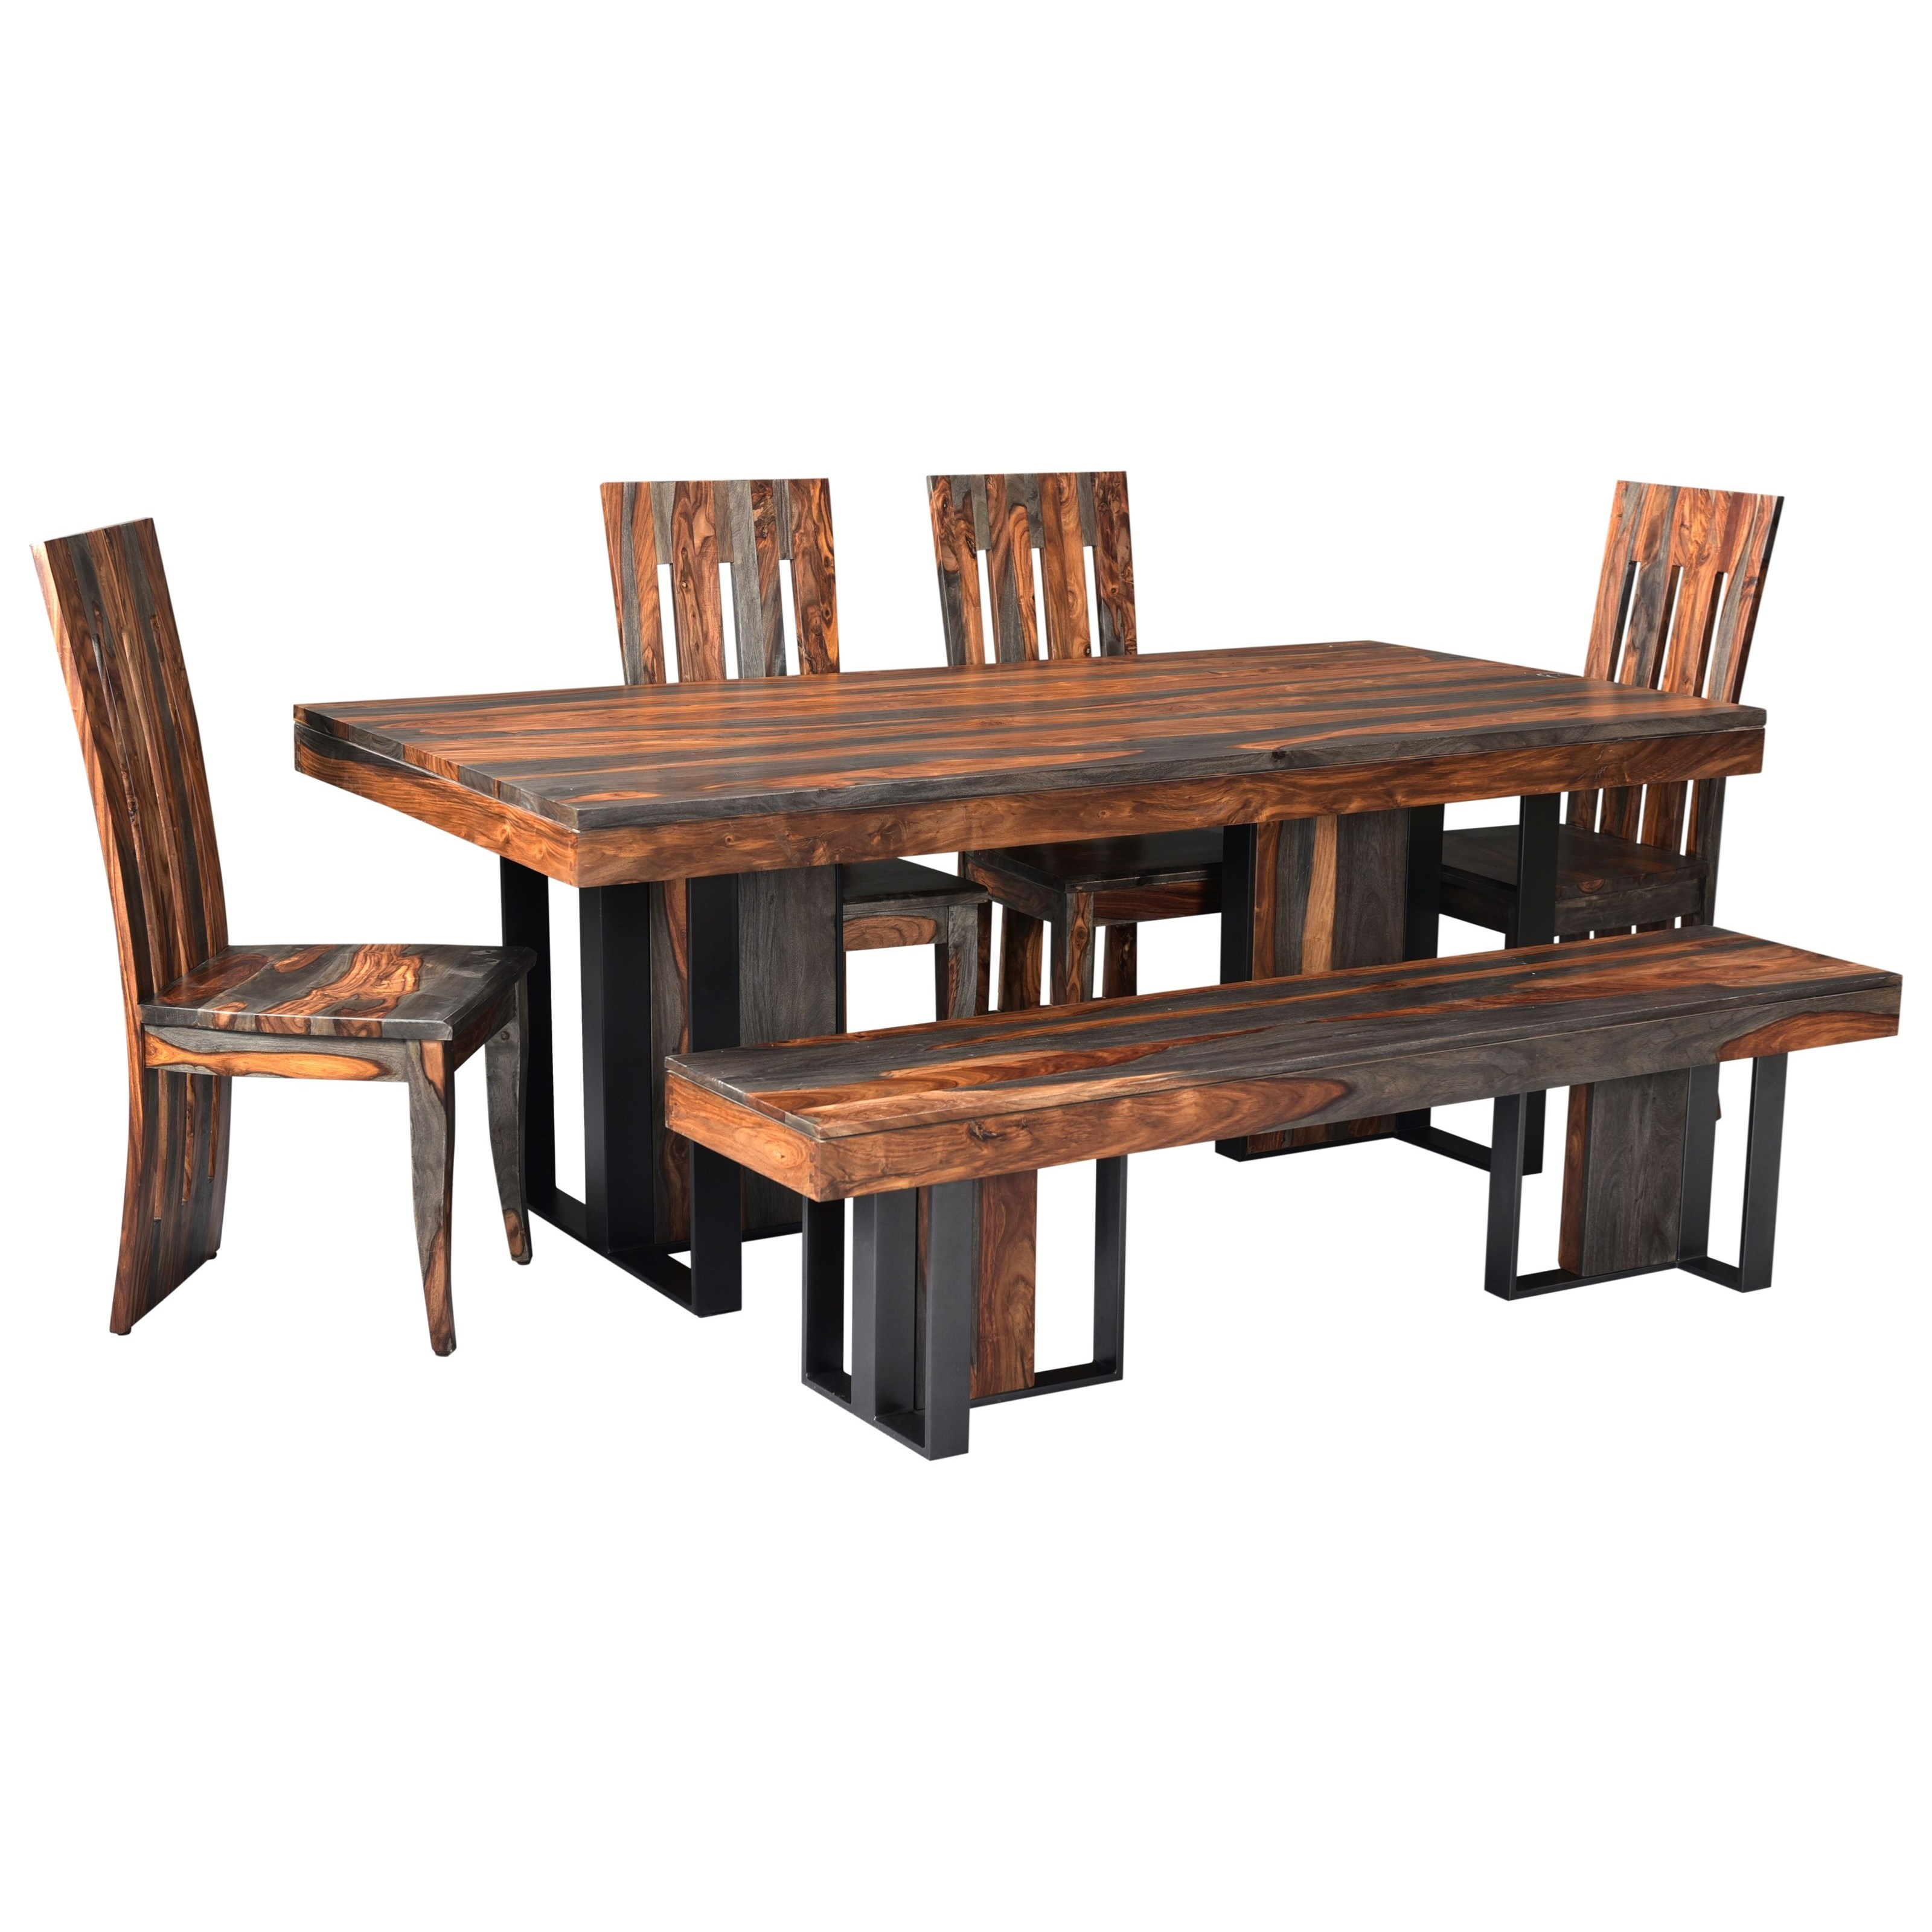 Sierra Table and Chair Set with Bench by Coast to Coast Imports at Corner Furniture